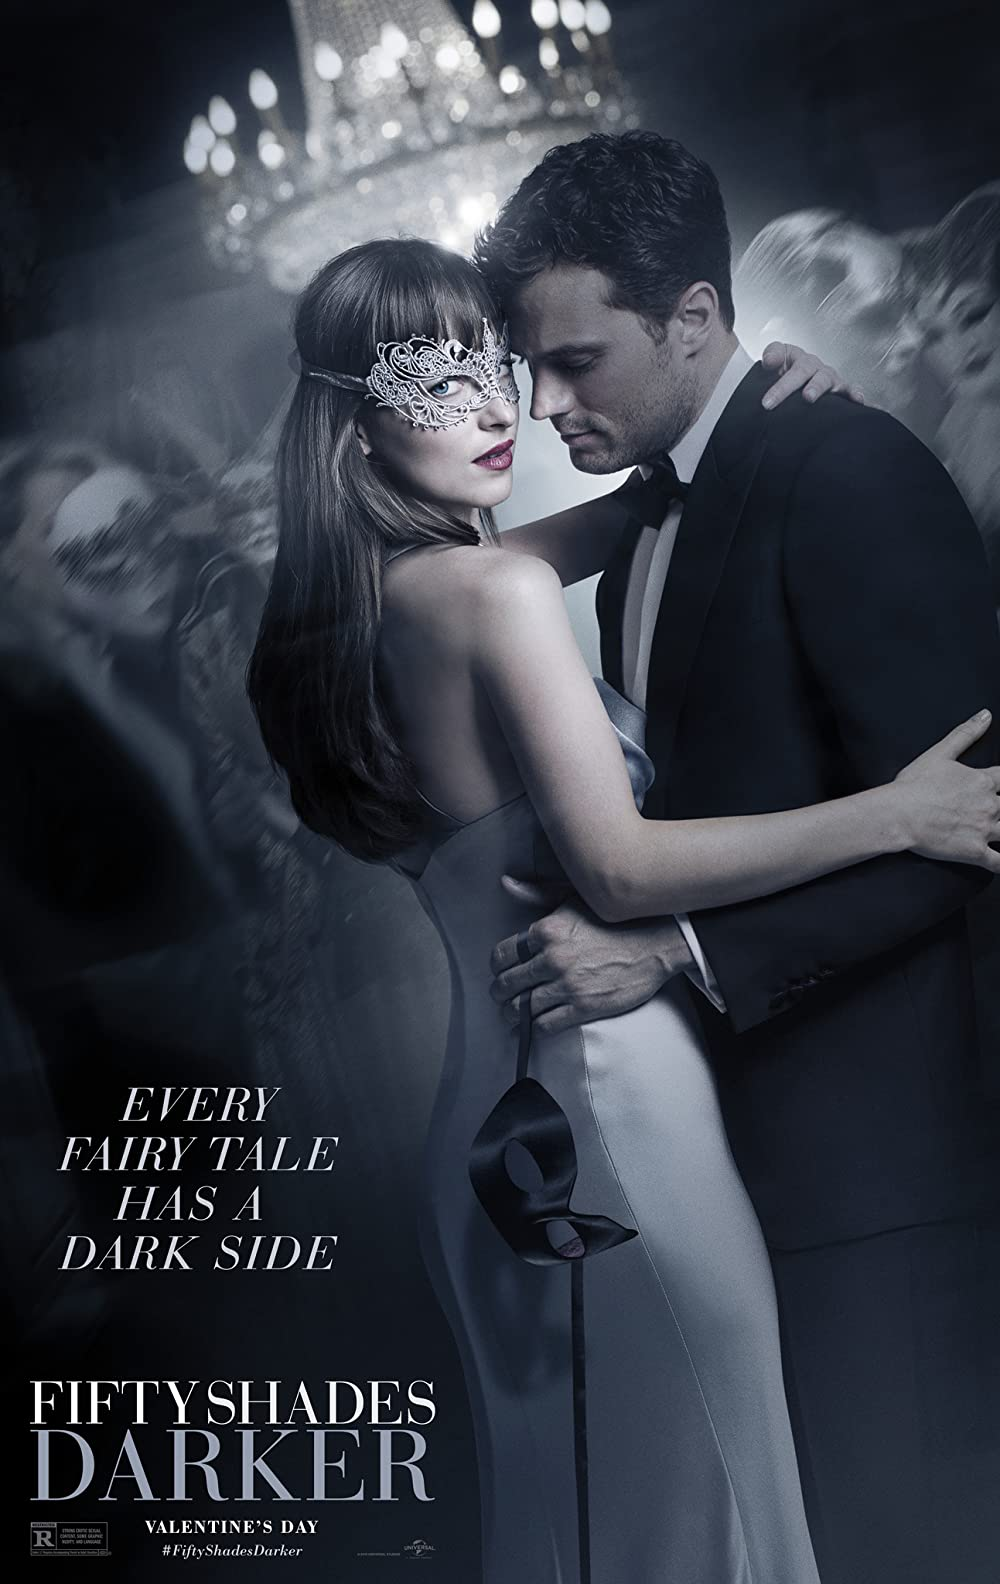 18+Fifty Shades Darker (2021) Hindi Dubbed Movie 720p HDRip AAC